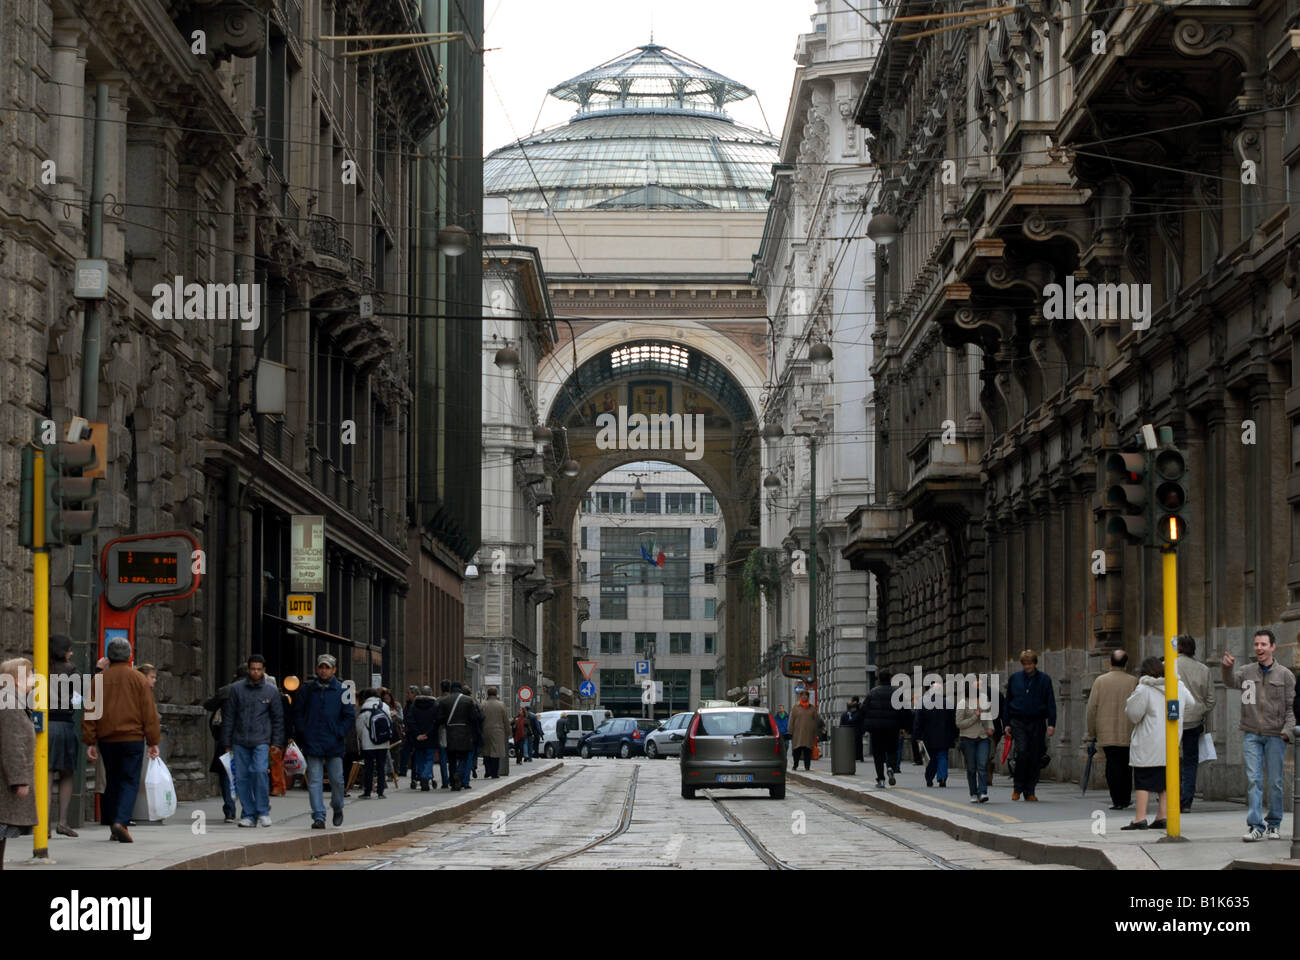 Galleria Vittorio Emanuele II as seen down Via Tommaso Grossi from Piazza Cordusio, Milano, Lombardy, Italy. - Stock Image